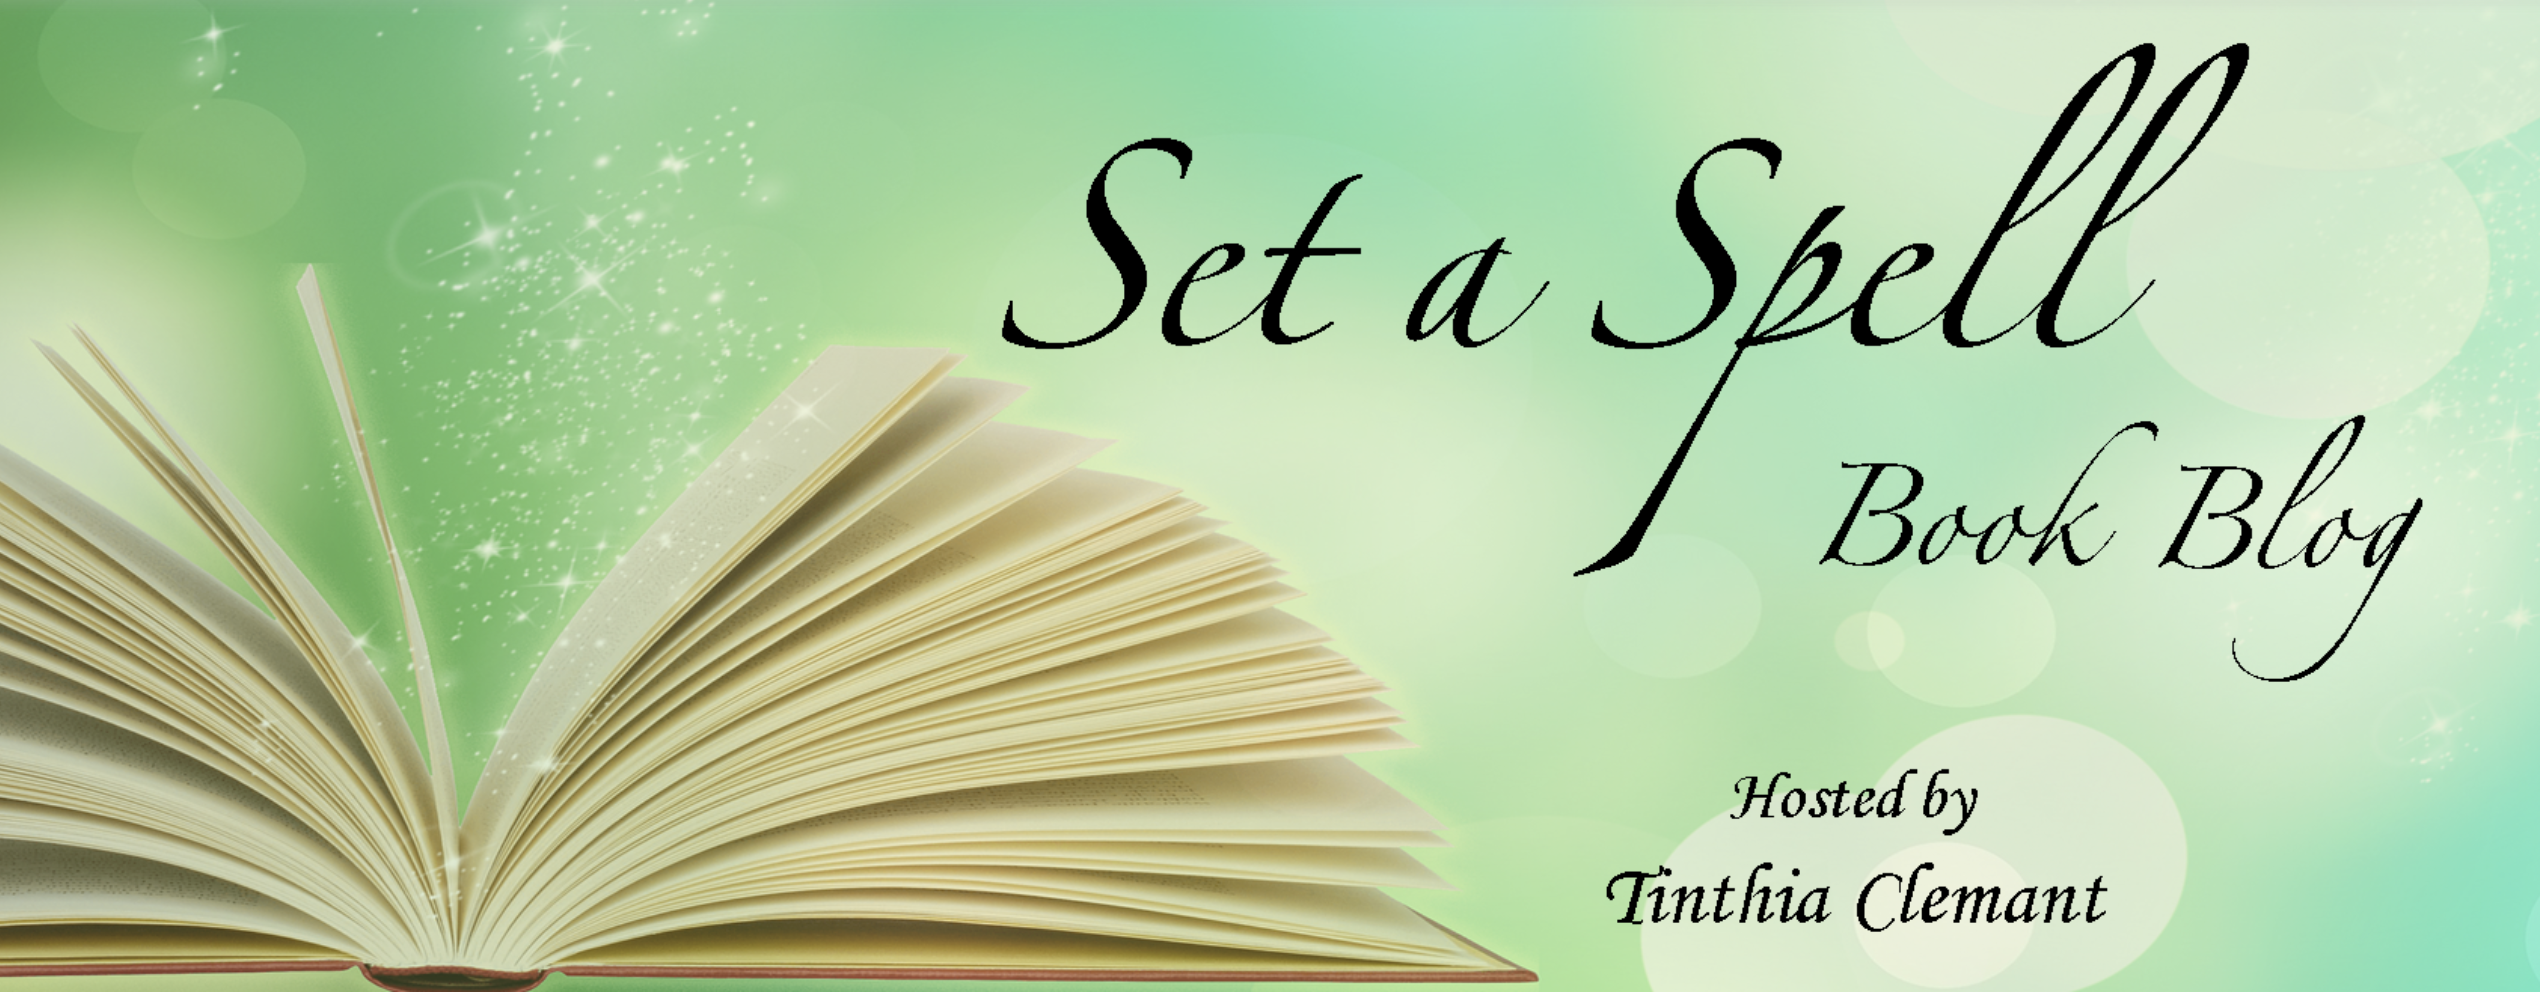 Set a Spell Book Blog